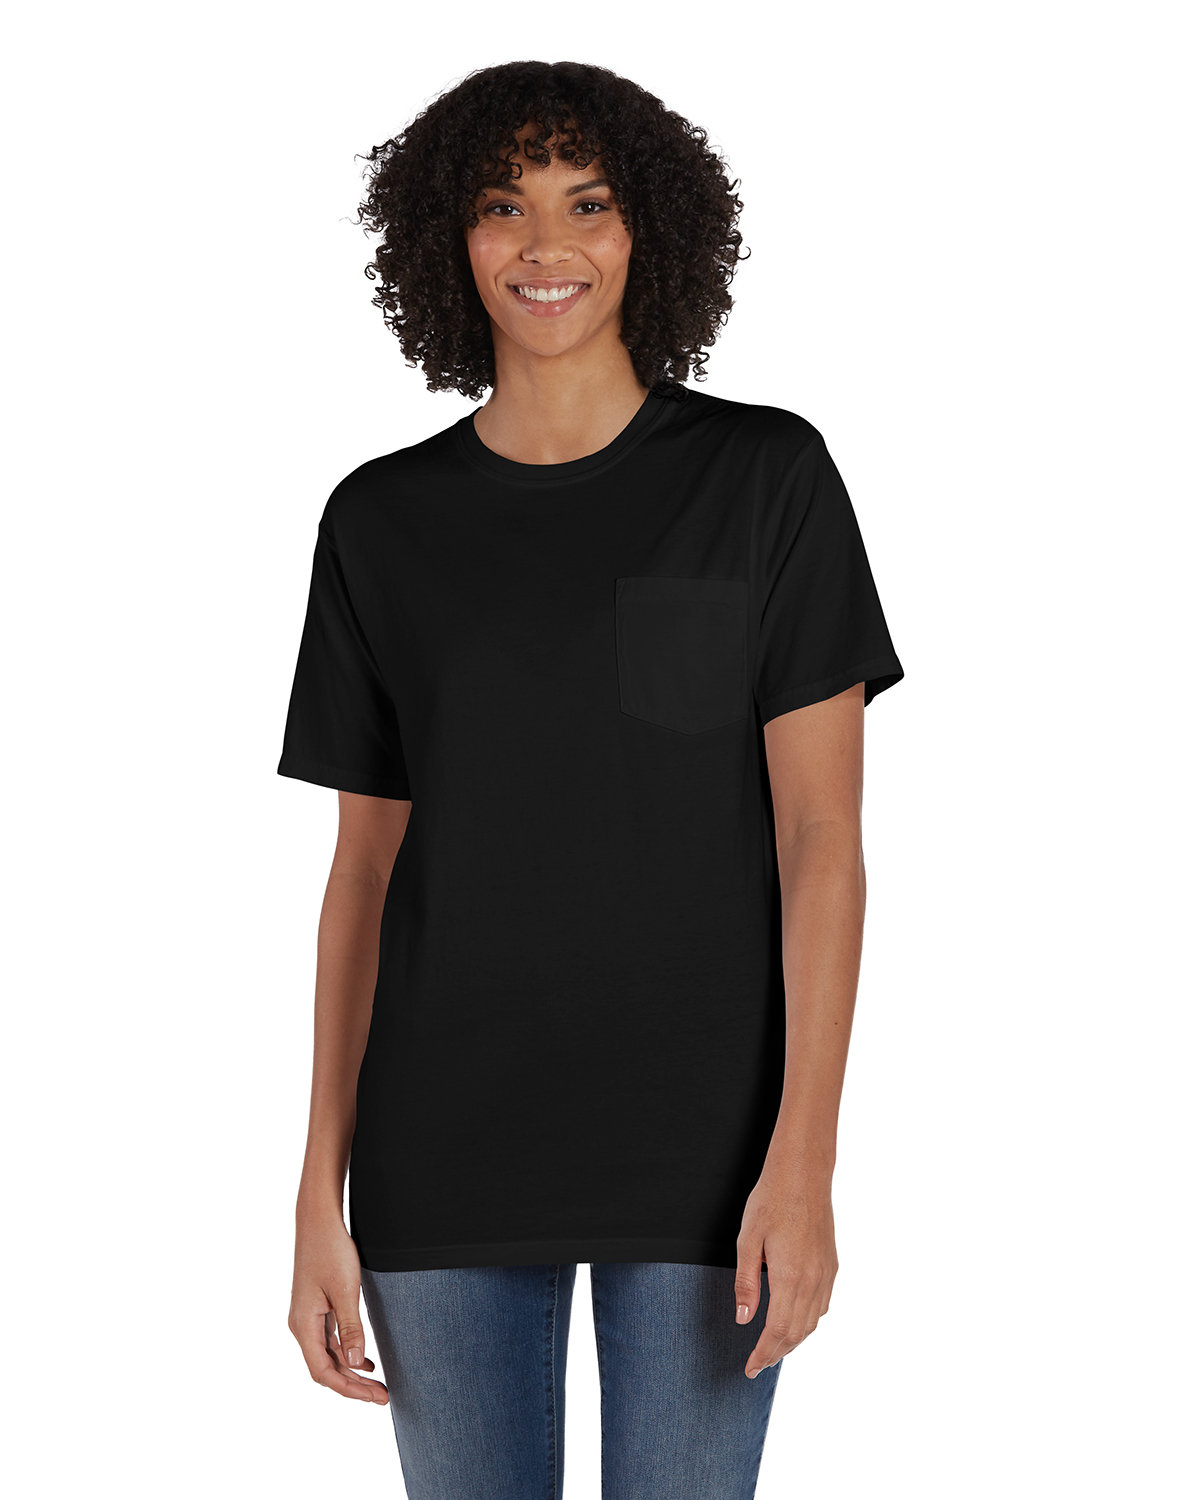 ComfortWash by Hanes Unisex Garment-Dyed T-Shirt with Pocket BLACK